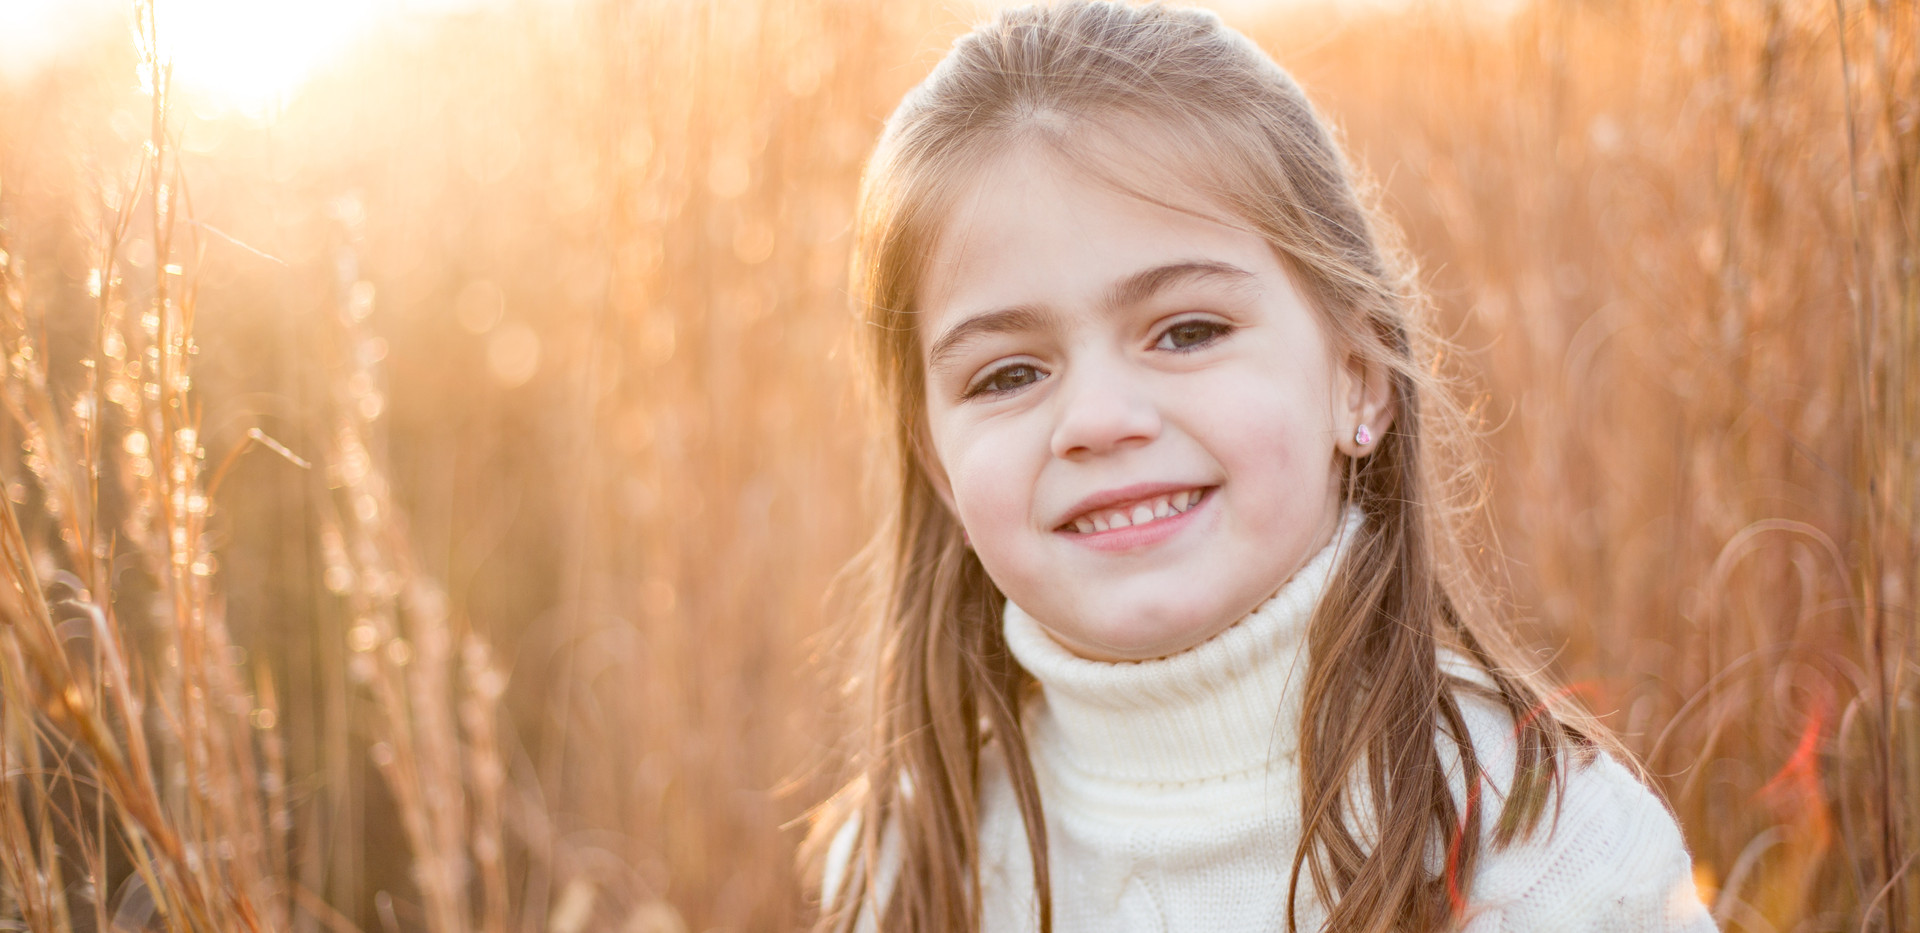 girl in white sweater, Chattanooga sunset photos, Chattanooga family photographer